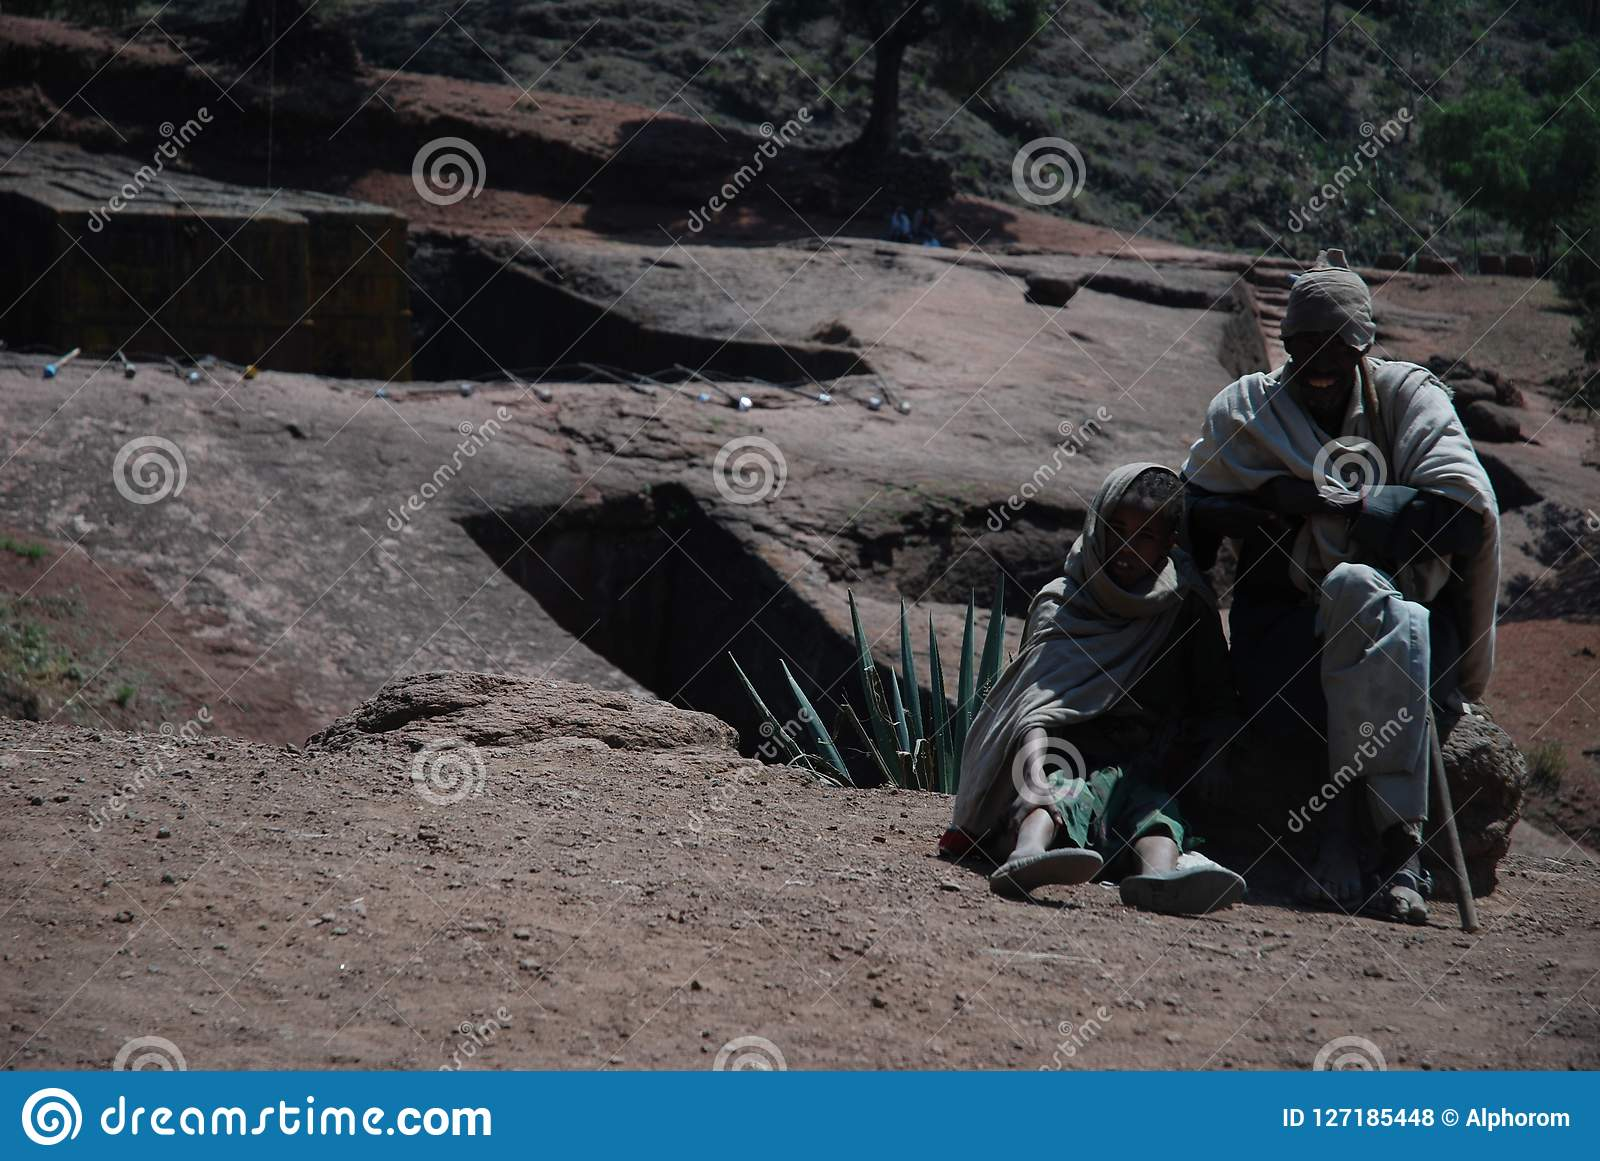 Lalibela, Wollo, Ethiopia, circa February 2007: Pilgrims outside of rock hewn church of Saint George, or Bet Giyorgis